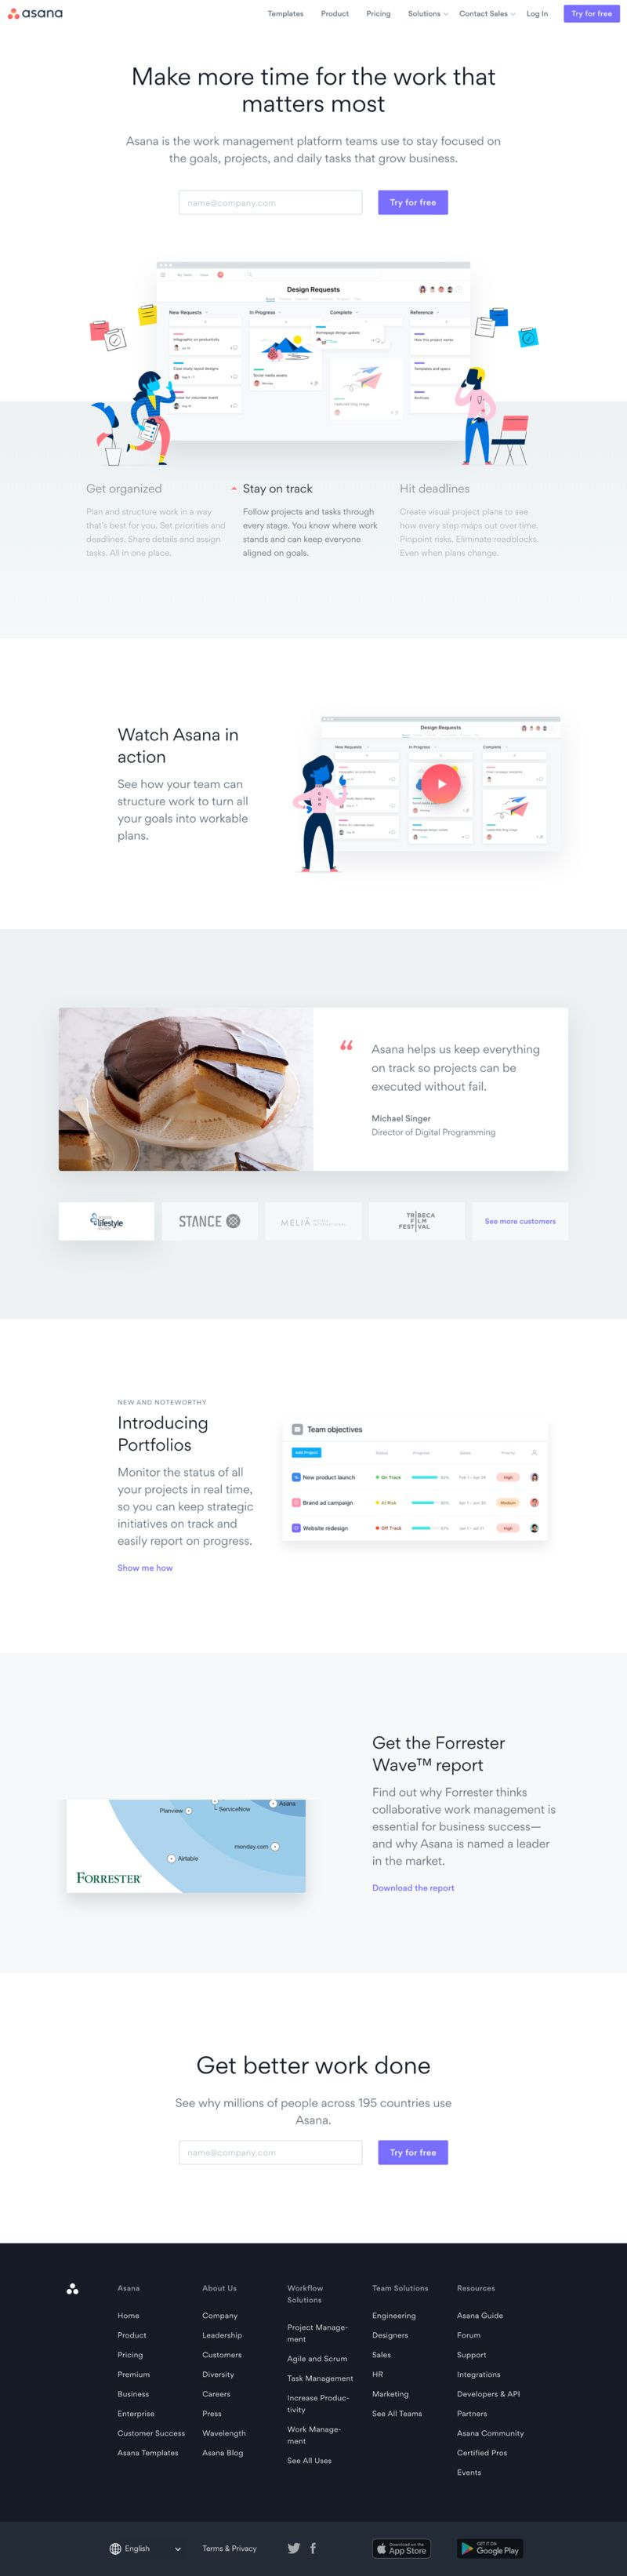 Webdesign Asana Easily Organize And Plan Workflows Projects And More So You Can Keep Your Teams Work On Schedule Sta Web Design Web Design Inspiration Asana